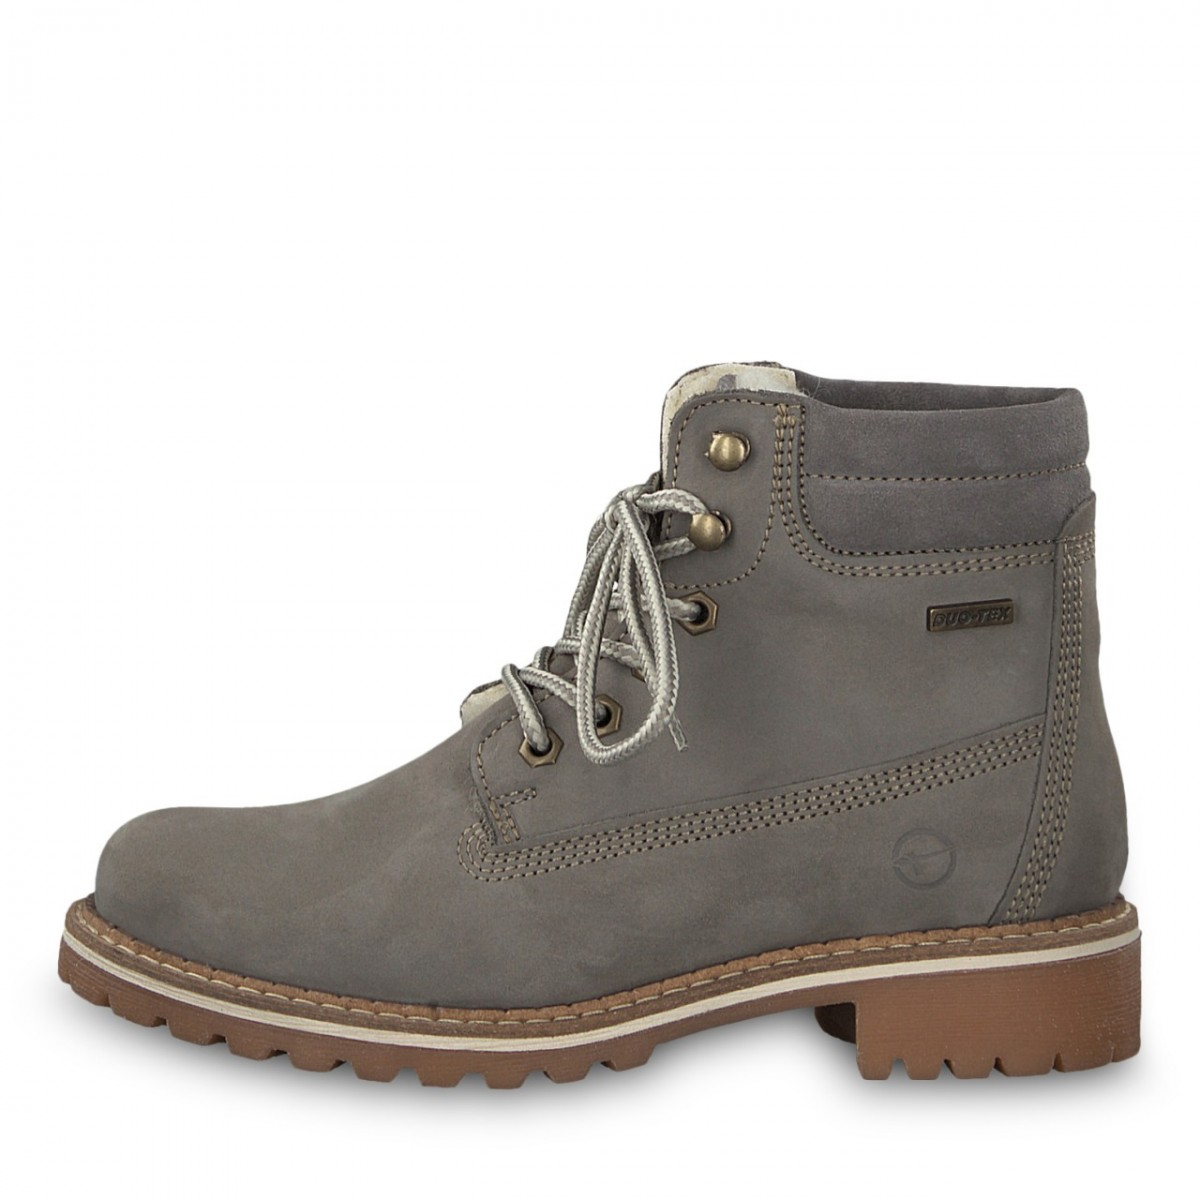 06cbc9b3f627fd Tamaris Damen Schnürboots Light Grey